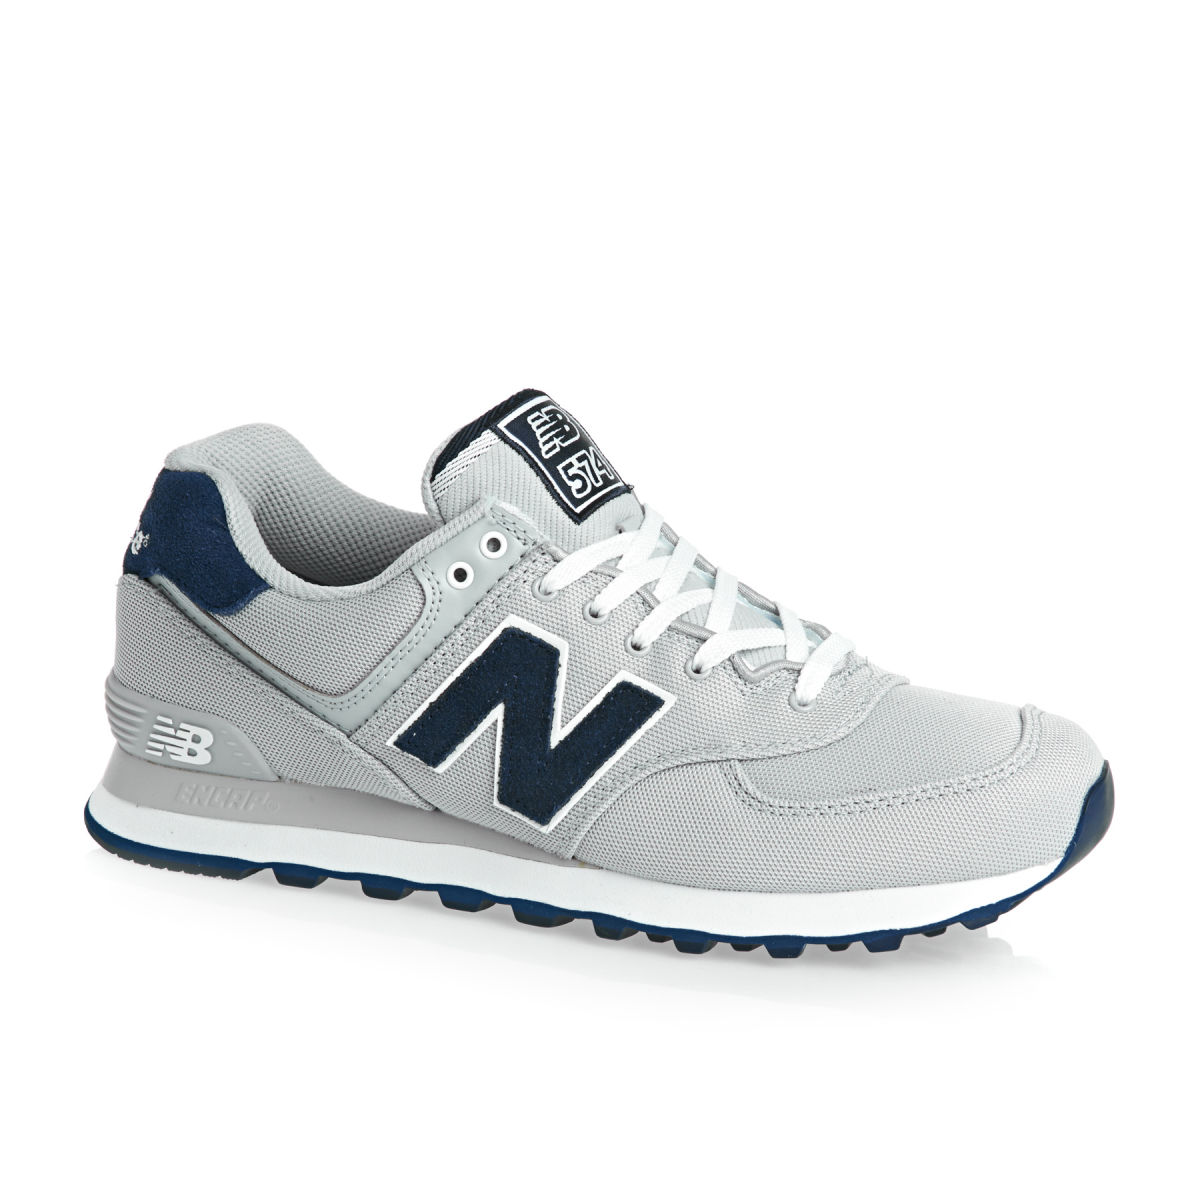 Cancelar Lo anterior Electricista  New Balance Outlet : New Balance * Fila * Saucony on sale Australia |  Mabelson4th.com